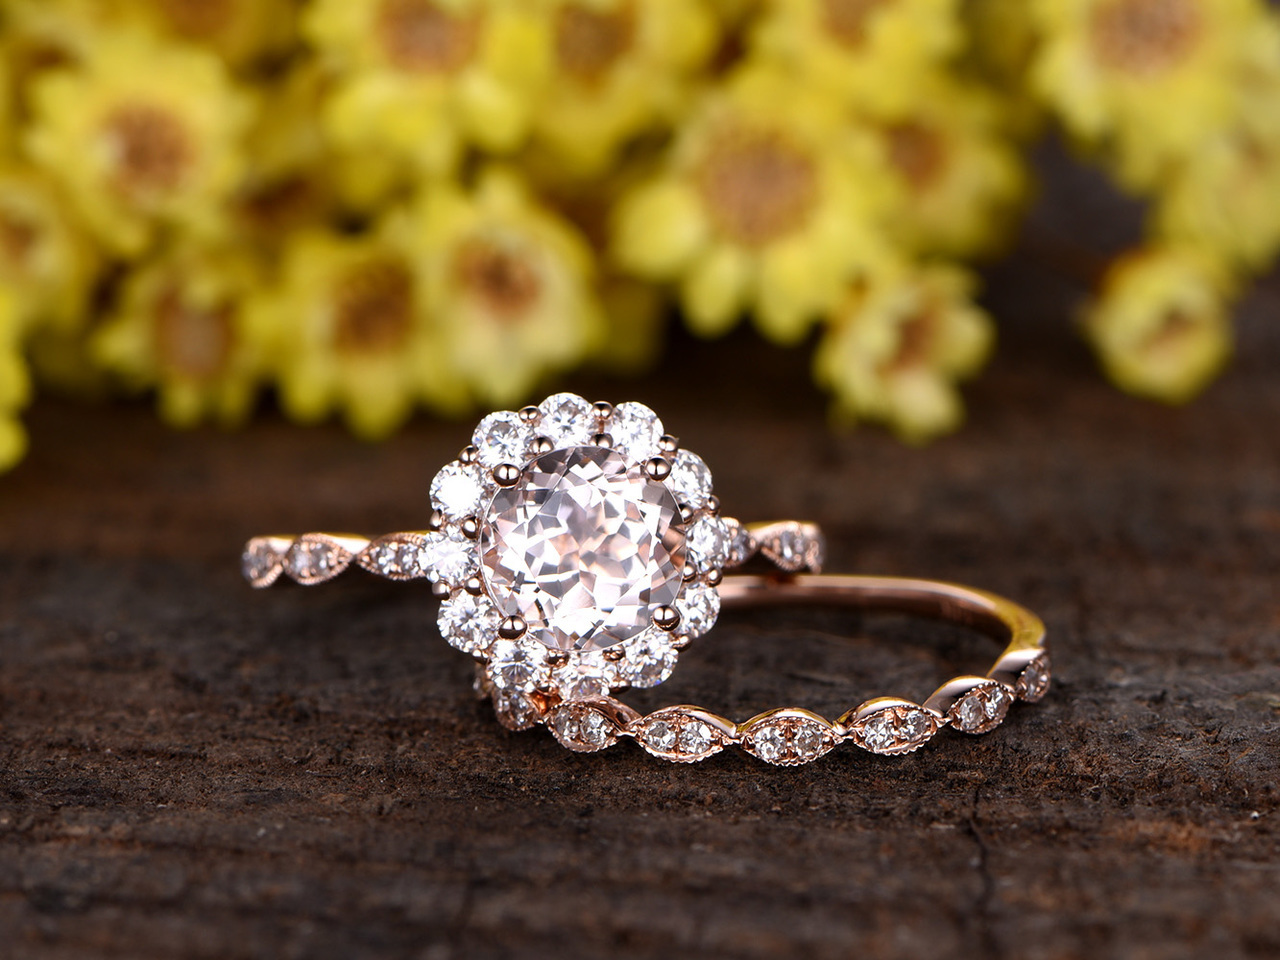 a351112b5745d Flower Engagement Rings - Lotus, Daisy, Black Rose and More | JJ